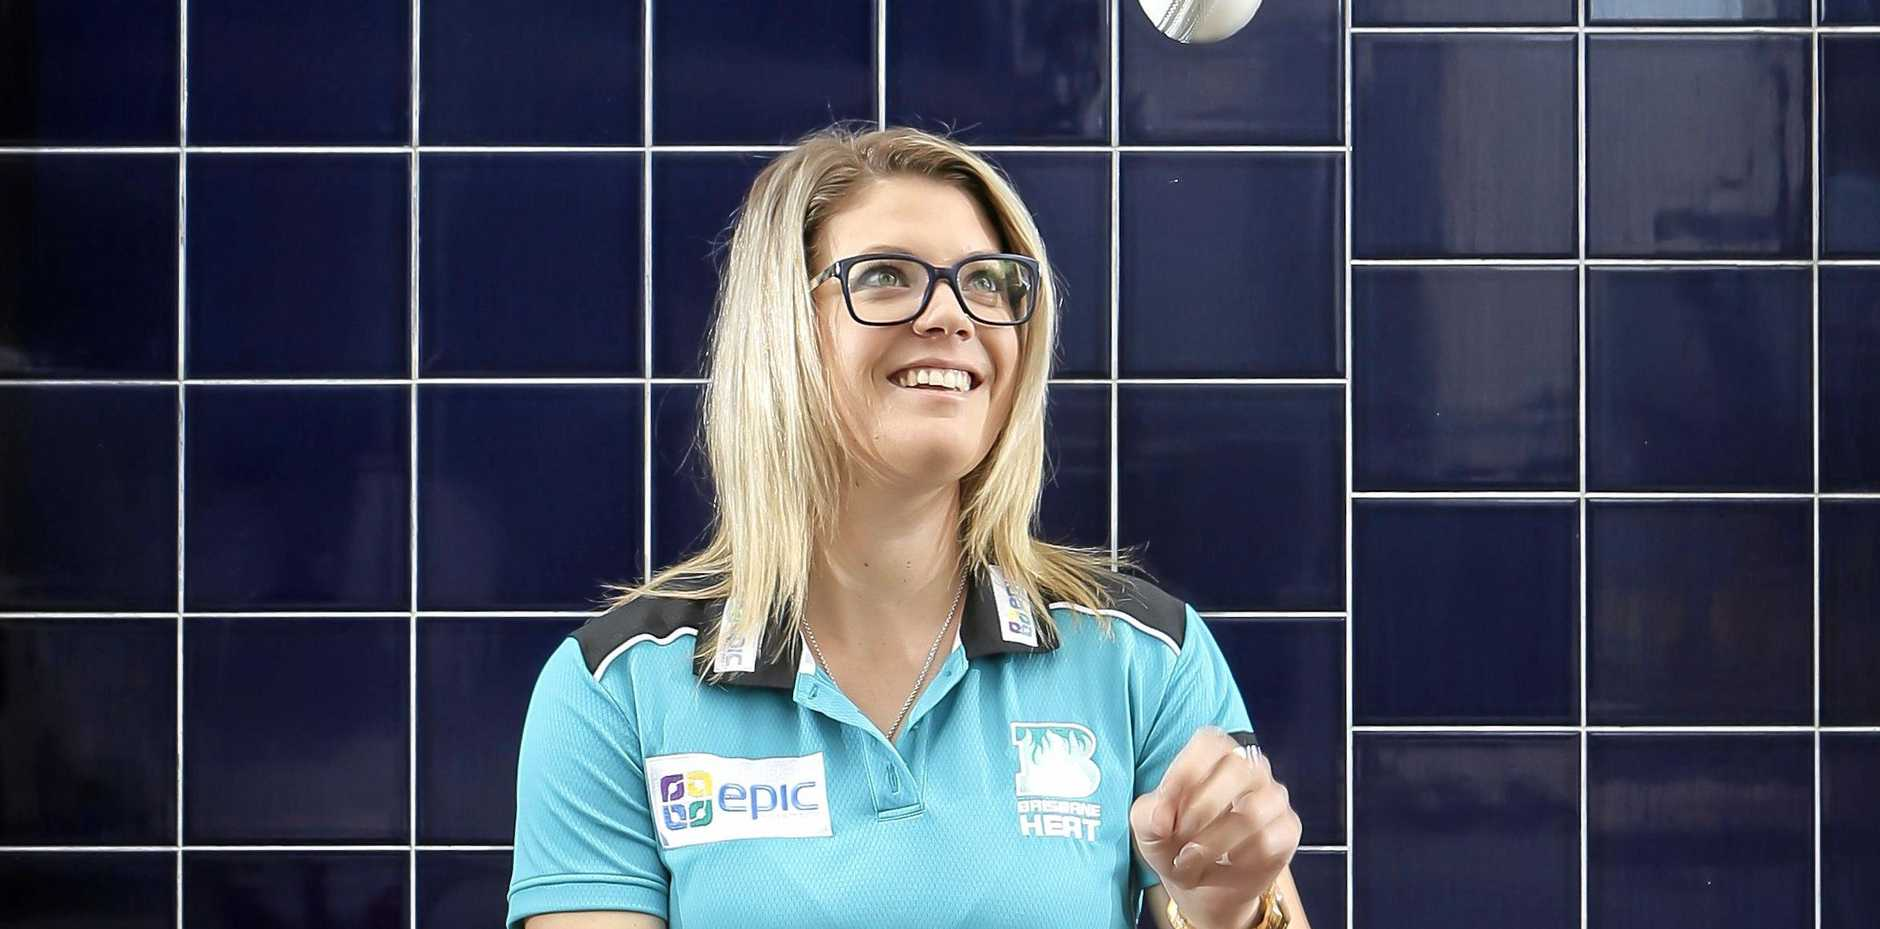 Brisbane Heat women's cricketer Kara Sutherland. Pic Mark Cranitch.